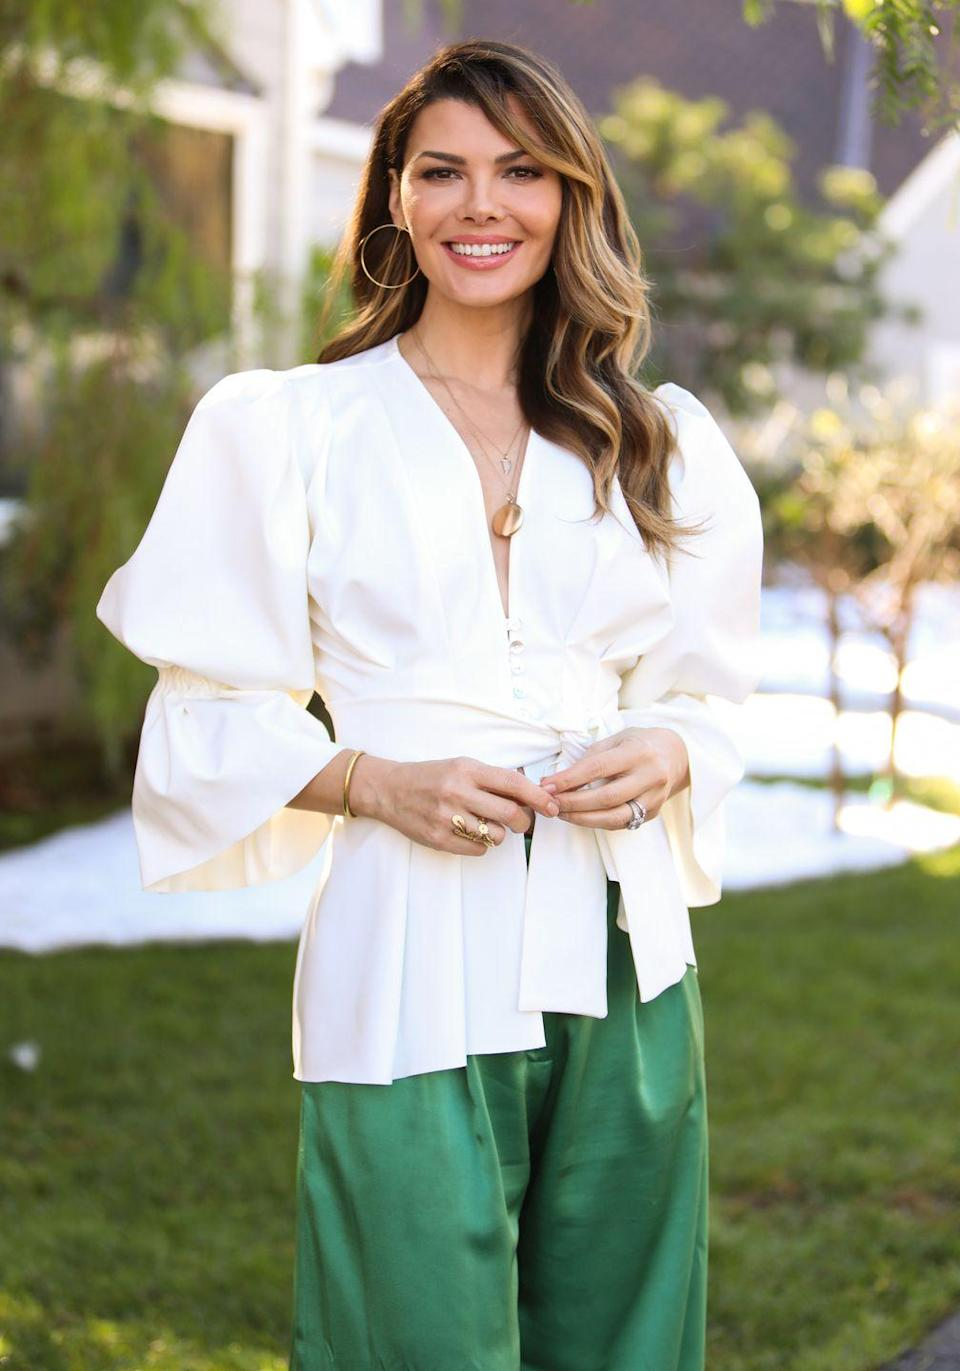 <p>Ali turned her Miss USA win into a career as an actress and TV personality. She earned her first starring role in 1998 on the sitcom <em>Eve</em>, and has since starred in many movies. She also gained national recognition in a Doritos commercial in 1998. </p>